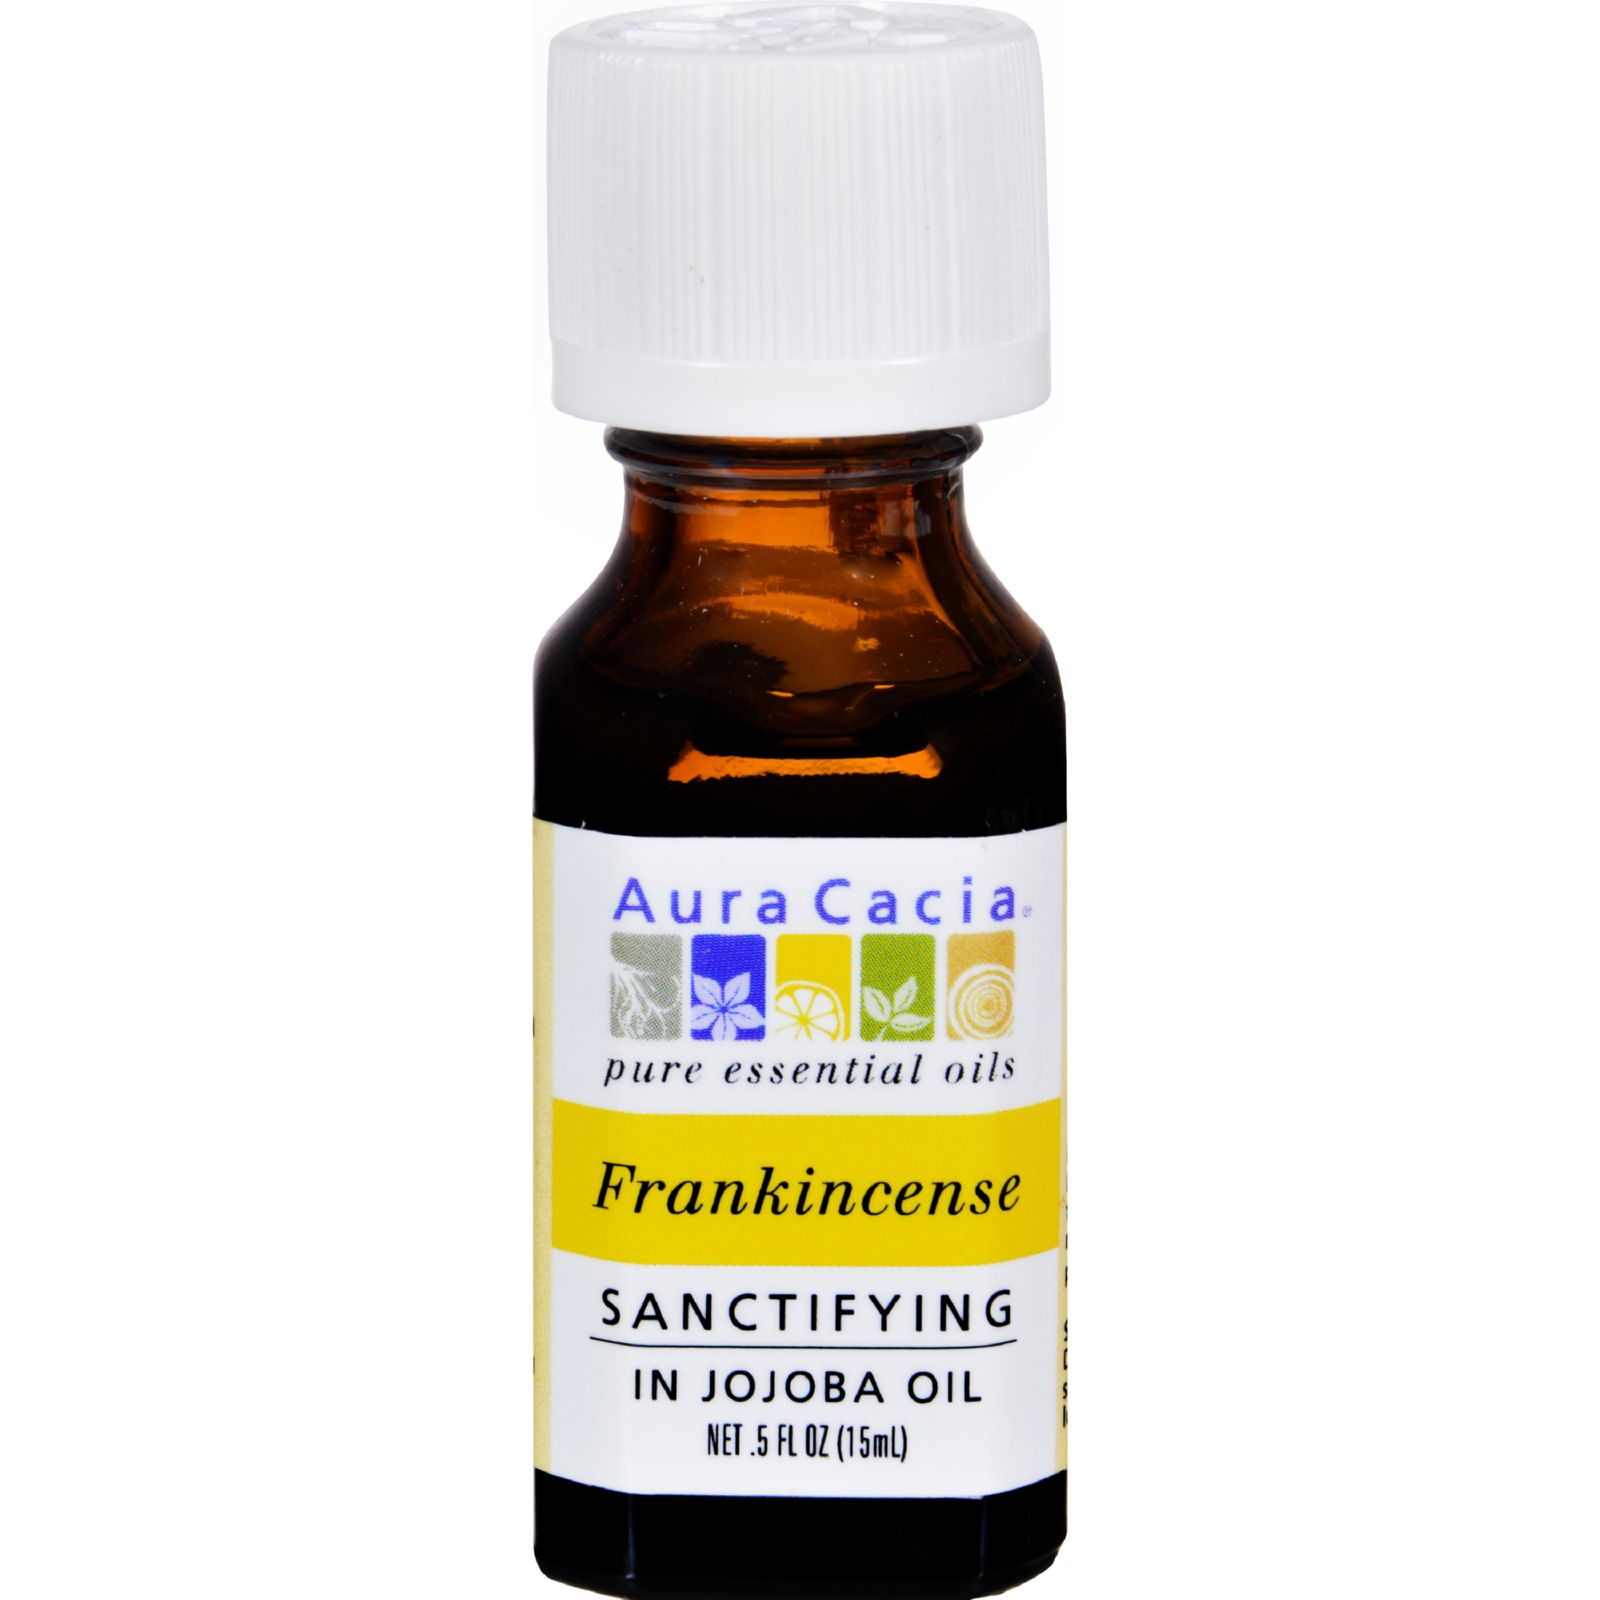 Aura Cacia Frankincense Essential Oil with Jojoba Oil .5 Fl oz.